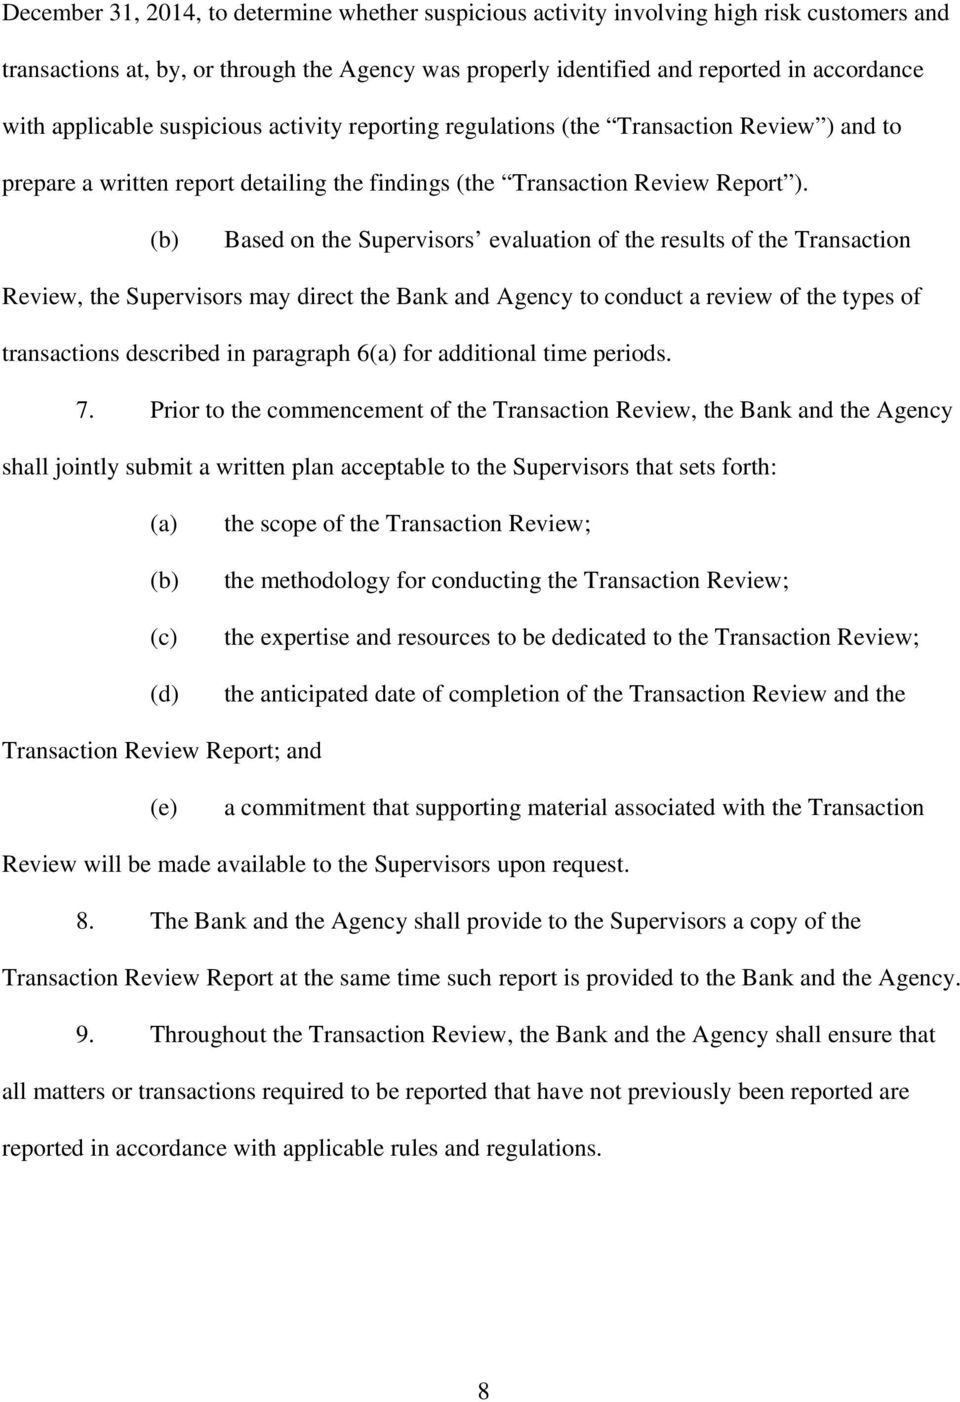 Based on the Supervisors evaluation of the results of the Transaction Review, the Supervisors may direct the Bank and Agency to conduct a review of the types of transactions described in paragraph 6